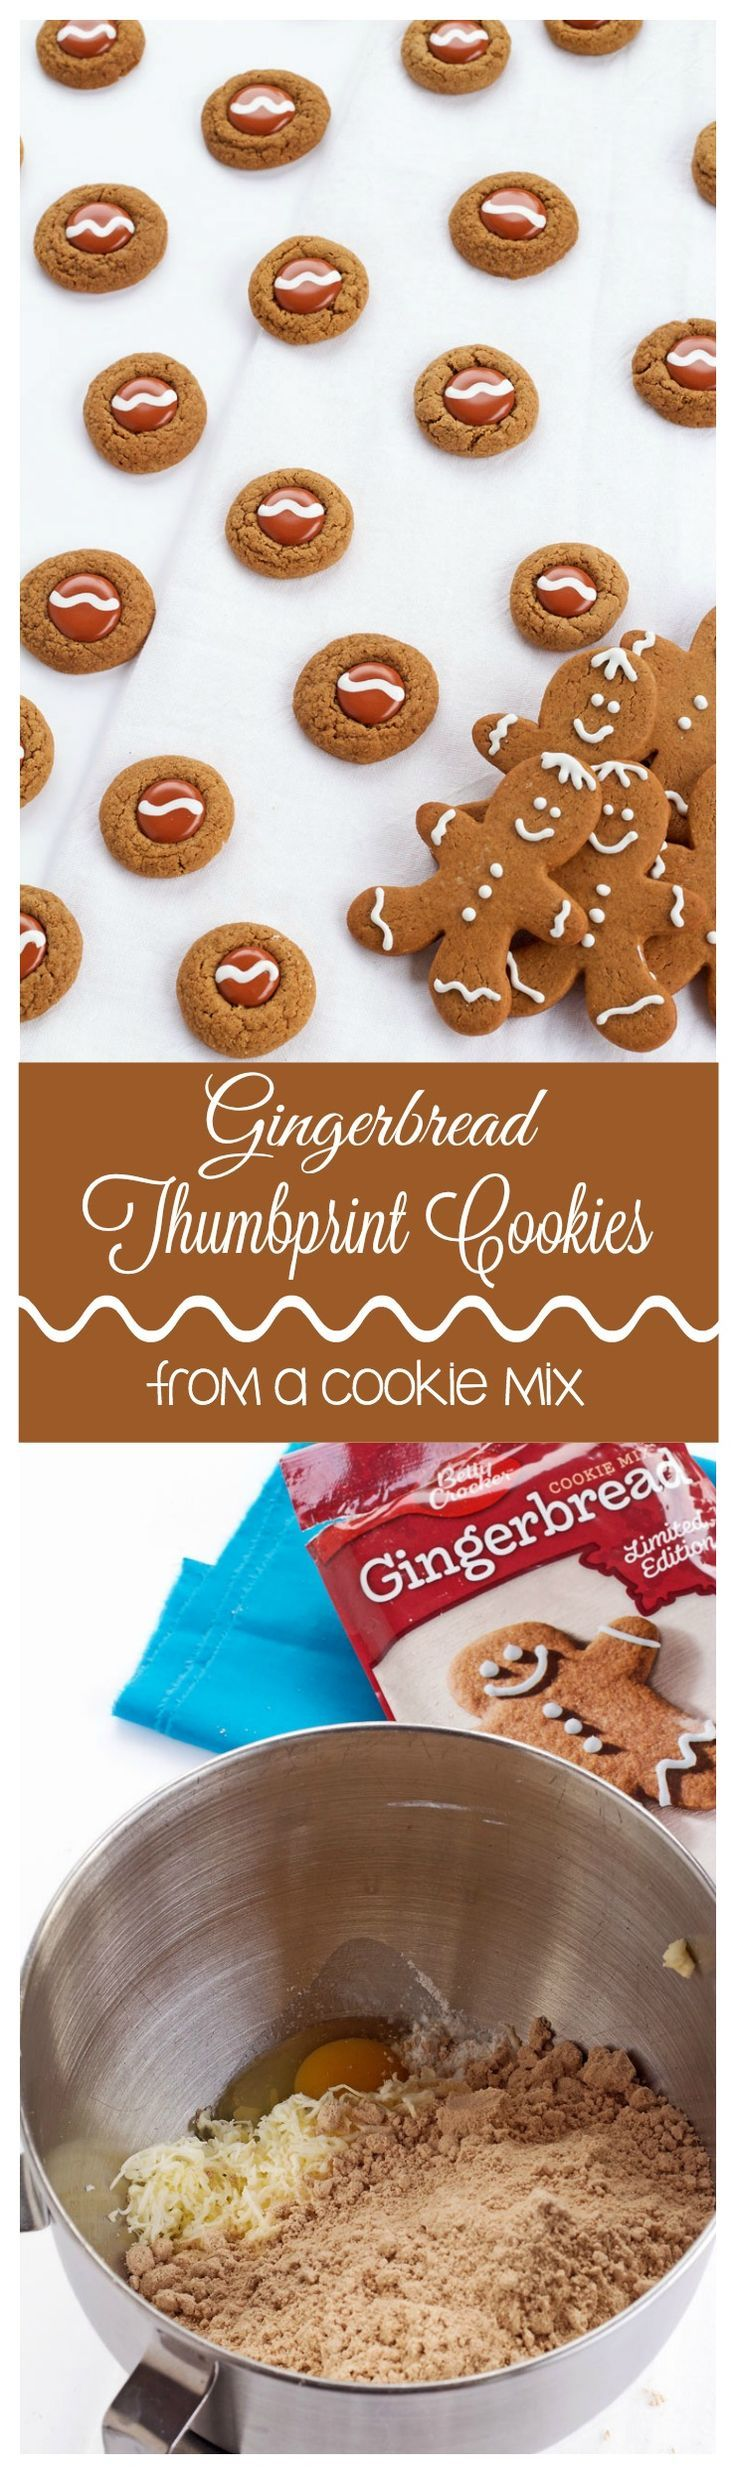 Gingerbread Thumbprint Cookies from a Cookie Mix   The Bearfoot Baker